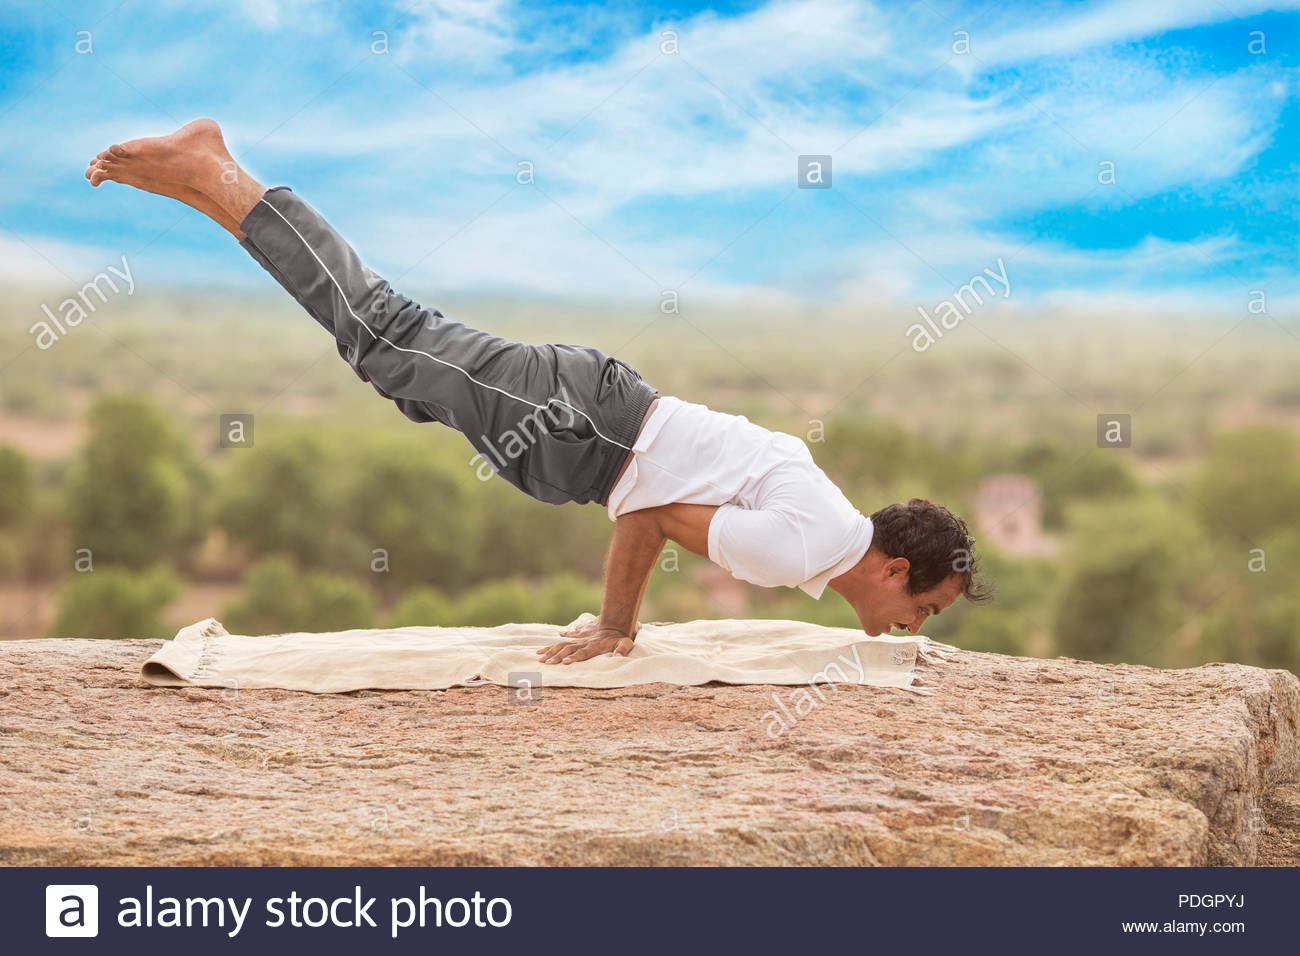 Young Indian man on top of mountain sitting in yoga pose. - Stock Image